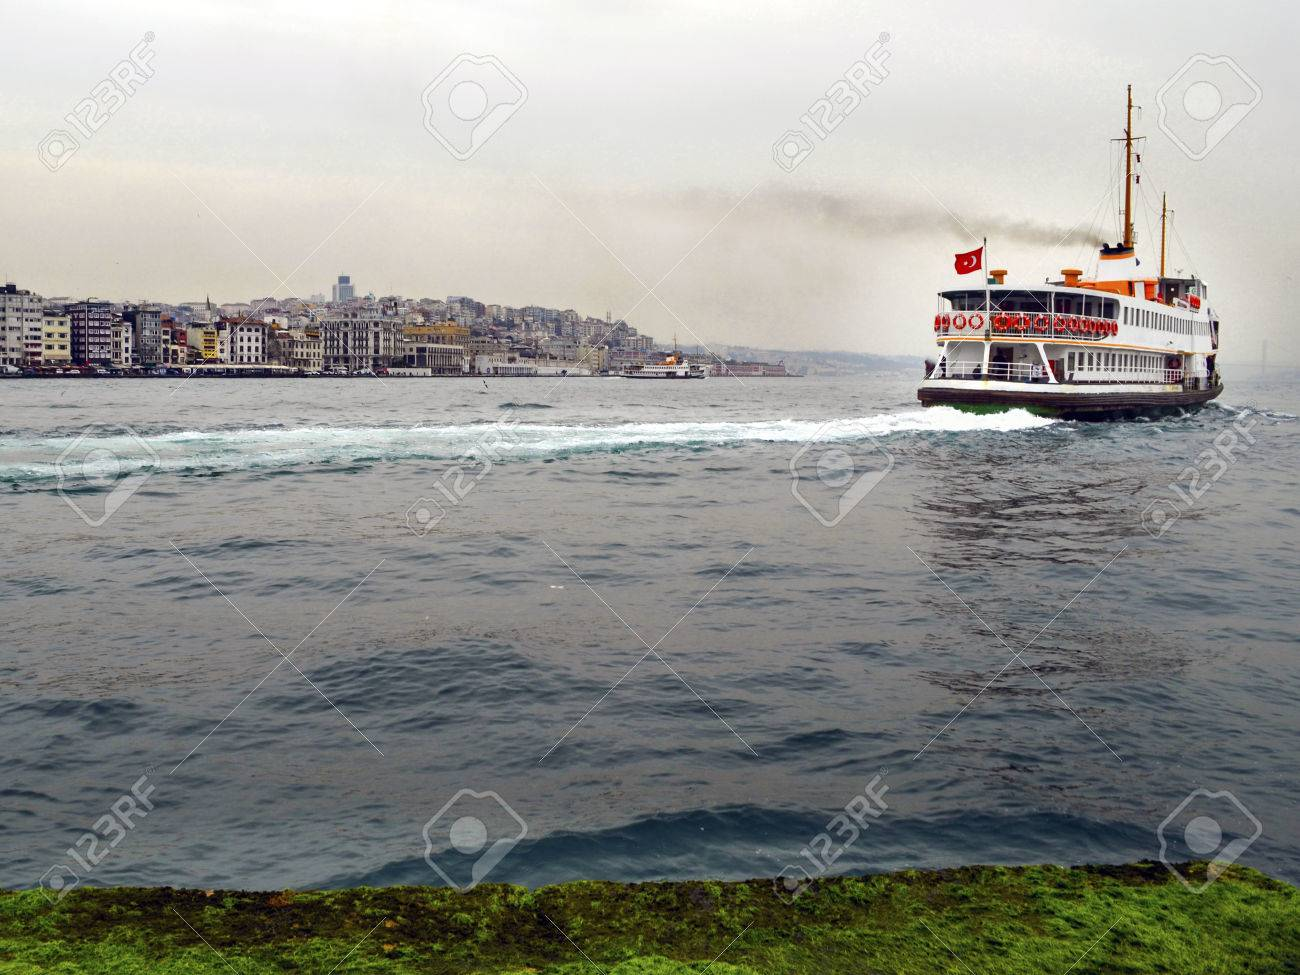 Ferry in Istanbul Bosphorus. Most Istanbulites commute from Europe to Asia on one of the dozen ferries that crisscross the Bosphorus all day long. - 70431388